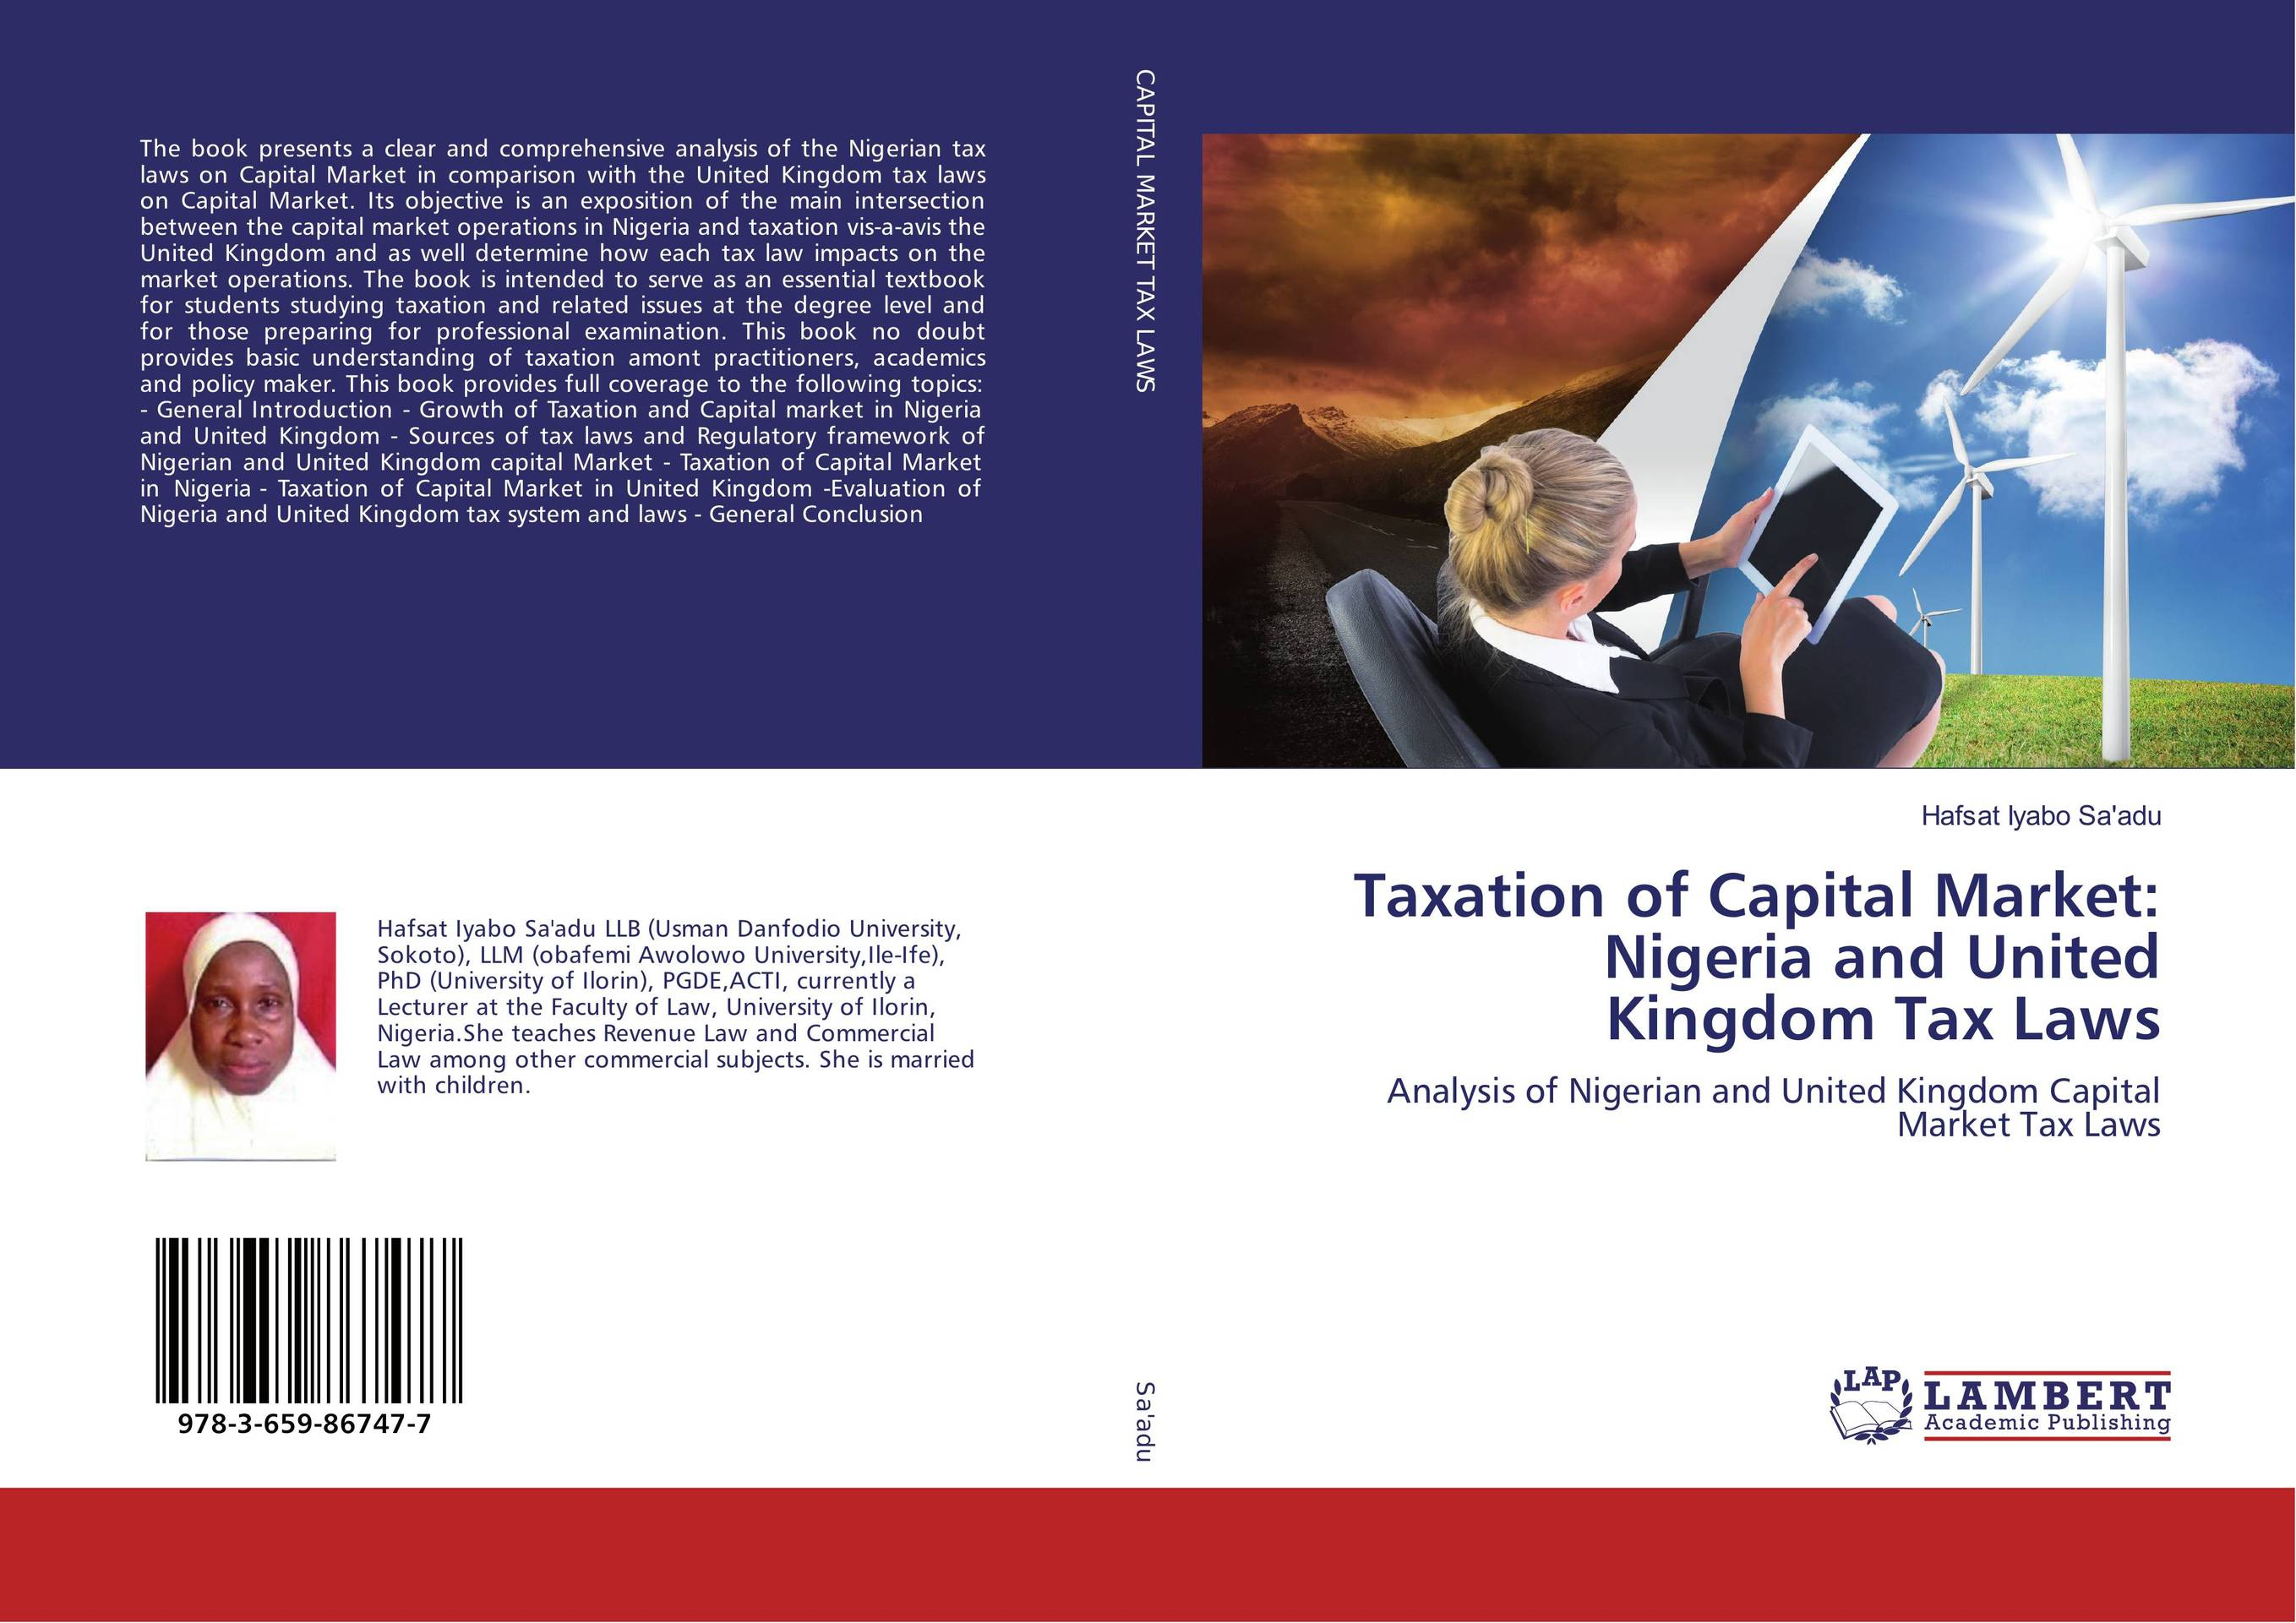 купить Taxation of Capital Market: Nigeria and United Kingdom Tax Laws недорого